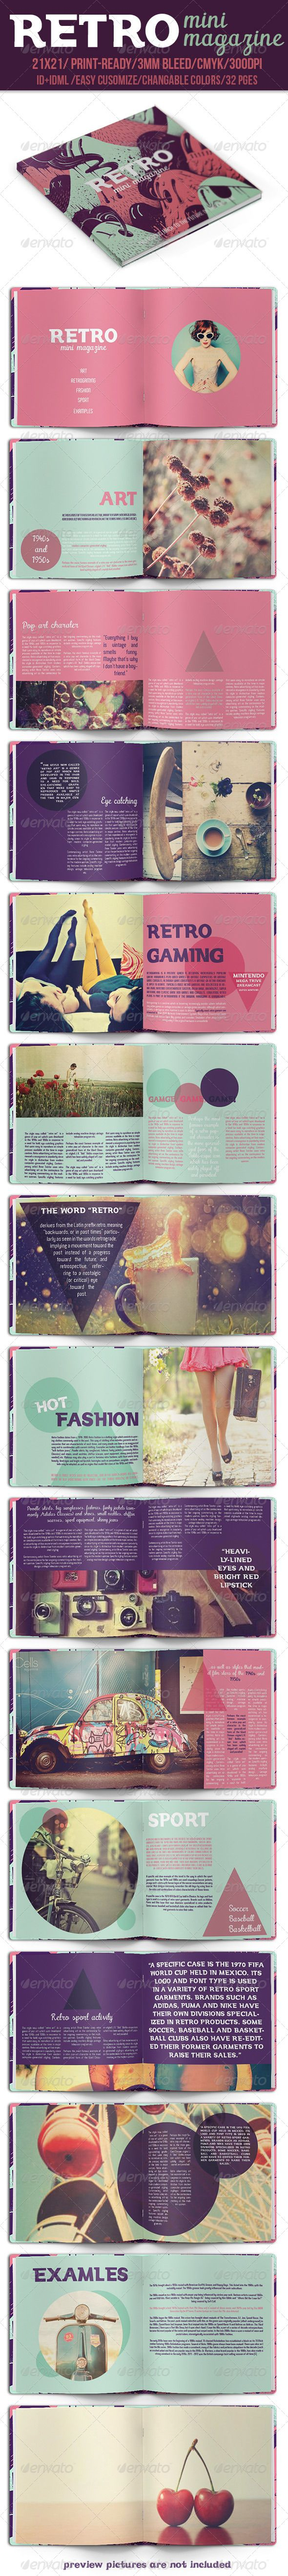 Retro Mini Magazine - Magazines Print Templates